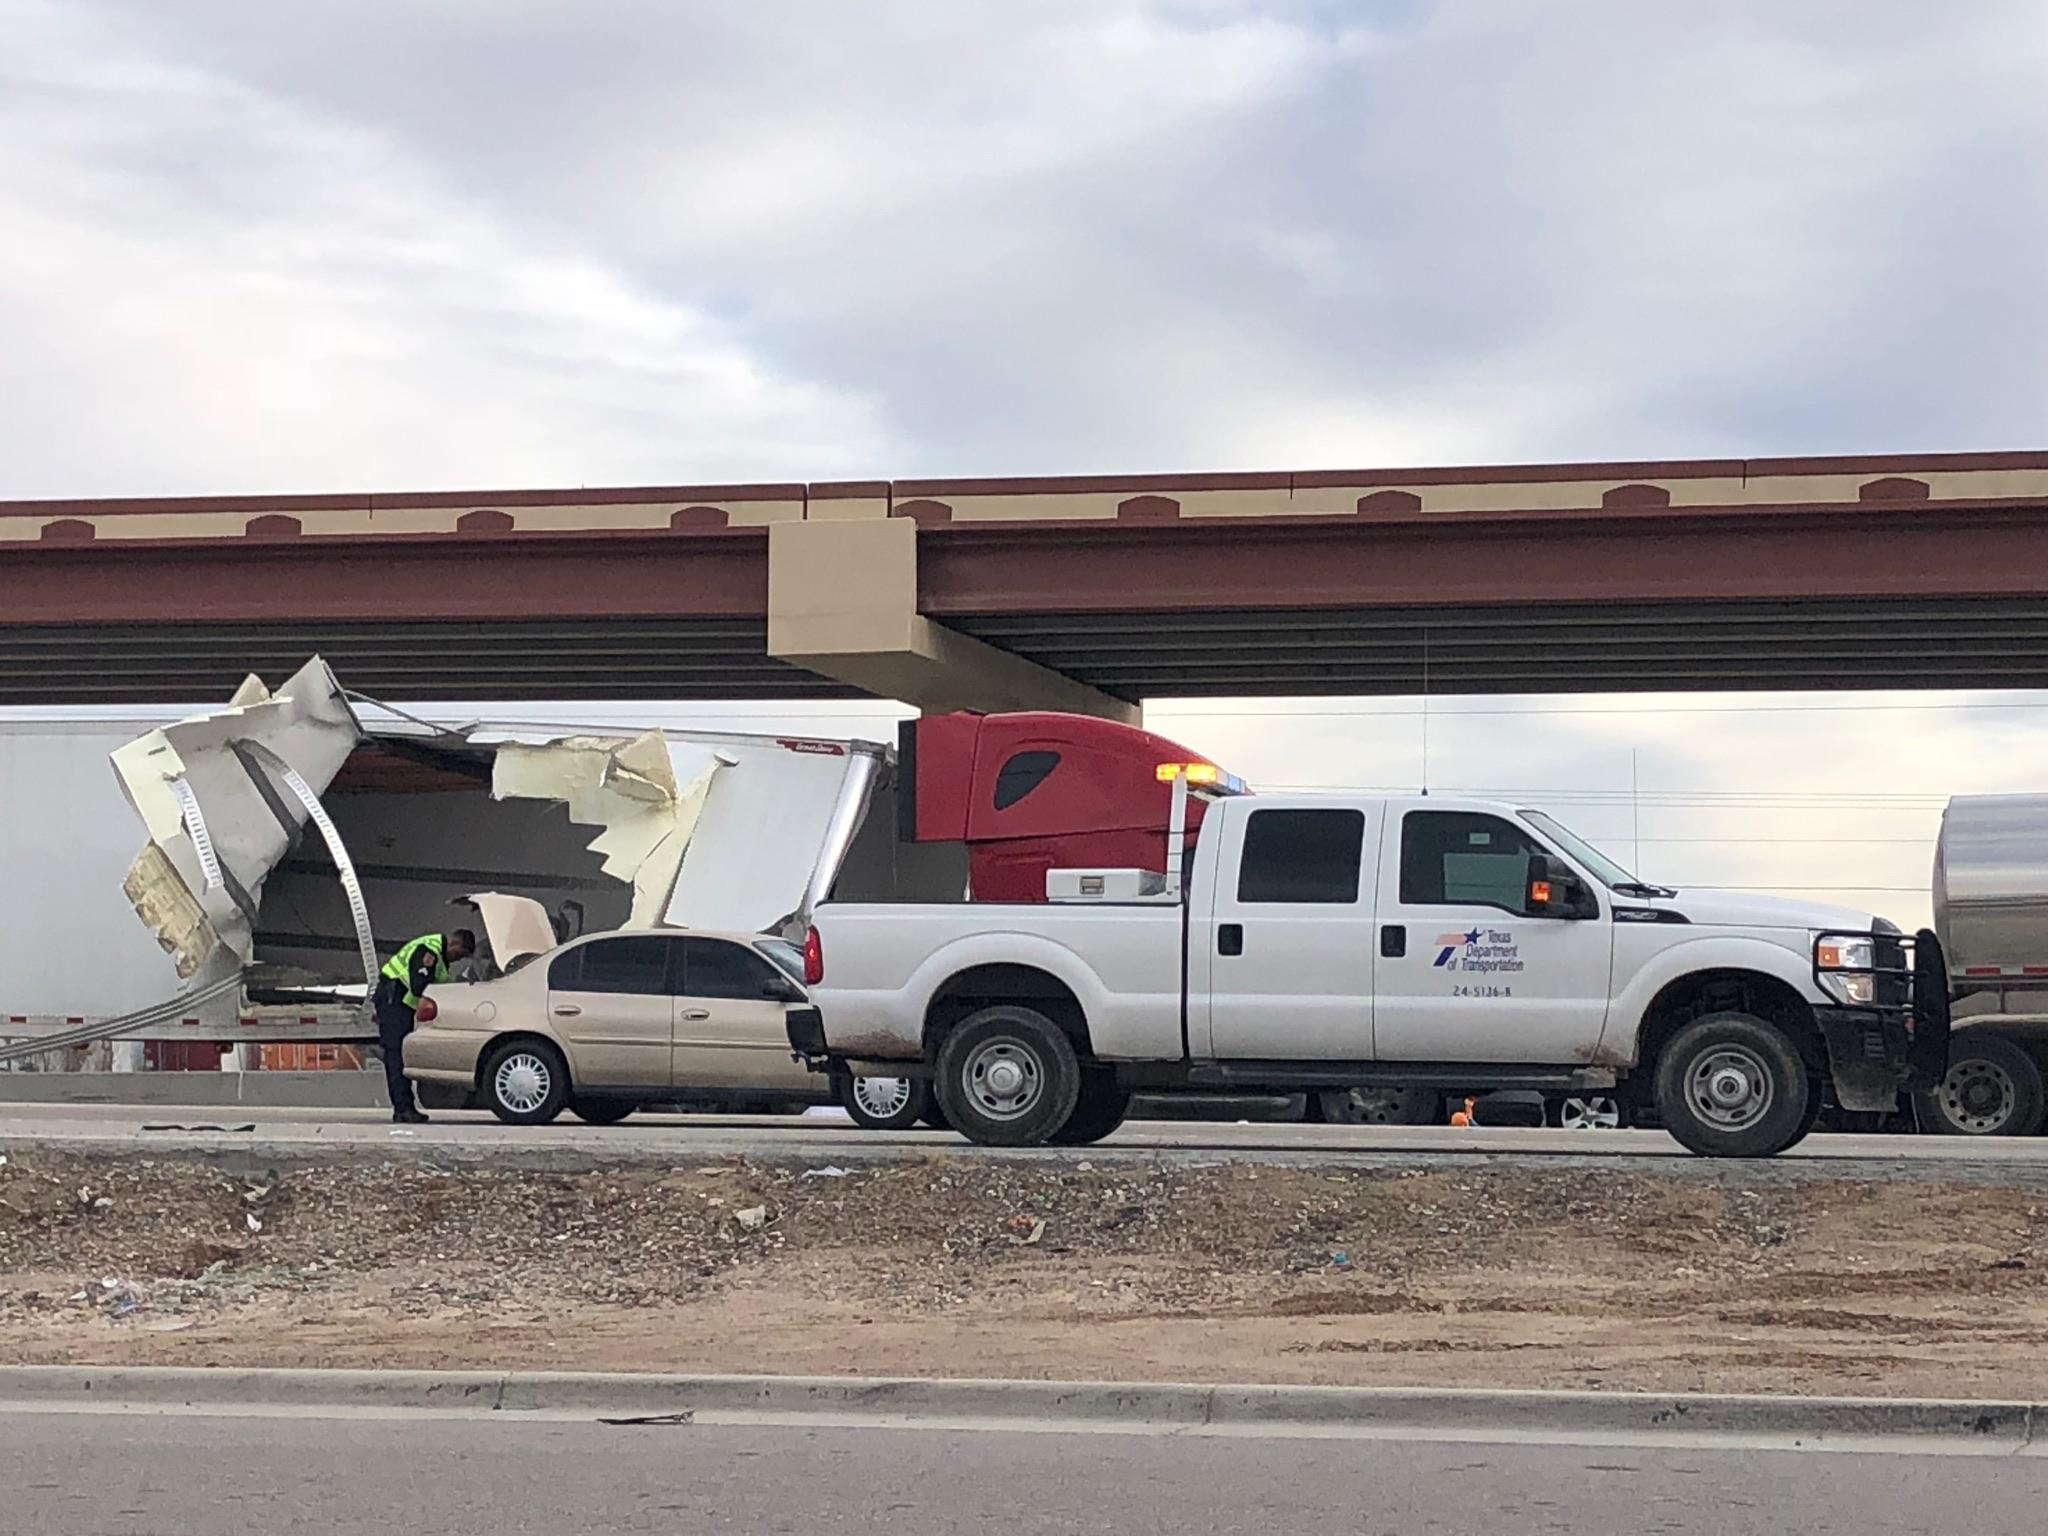 Two people were killed in a crash on I-10 east at Americas on Dec. 21, 2017. Credit: KFOX14 / CBS4